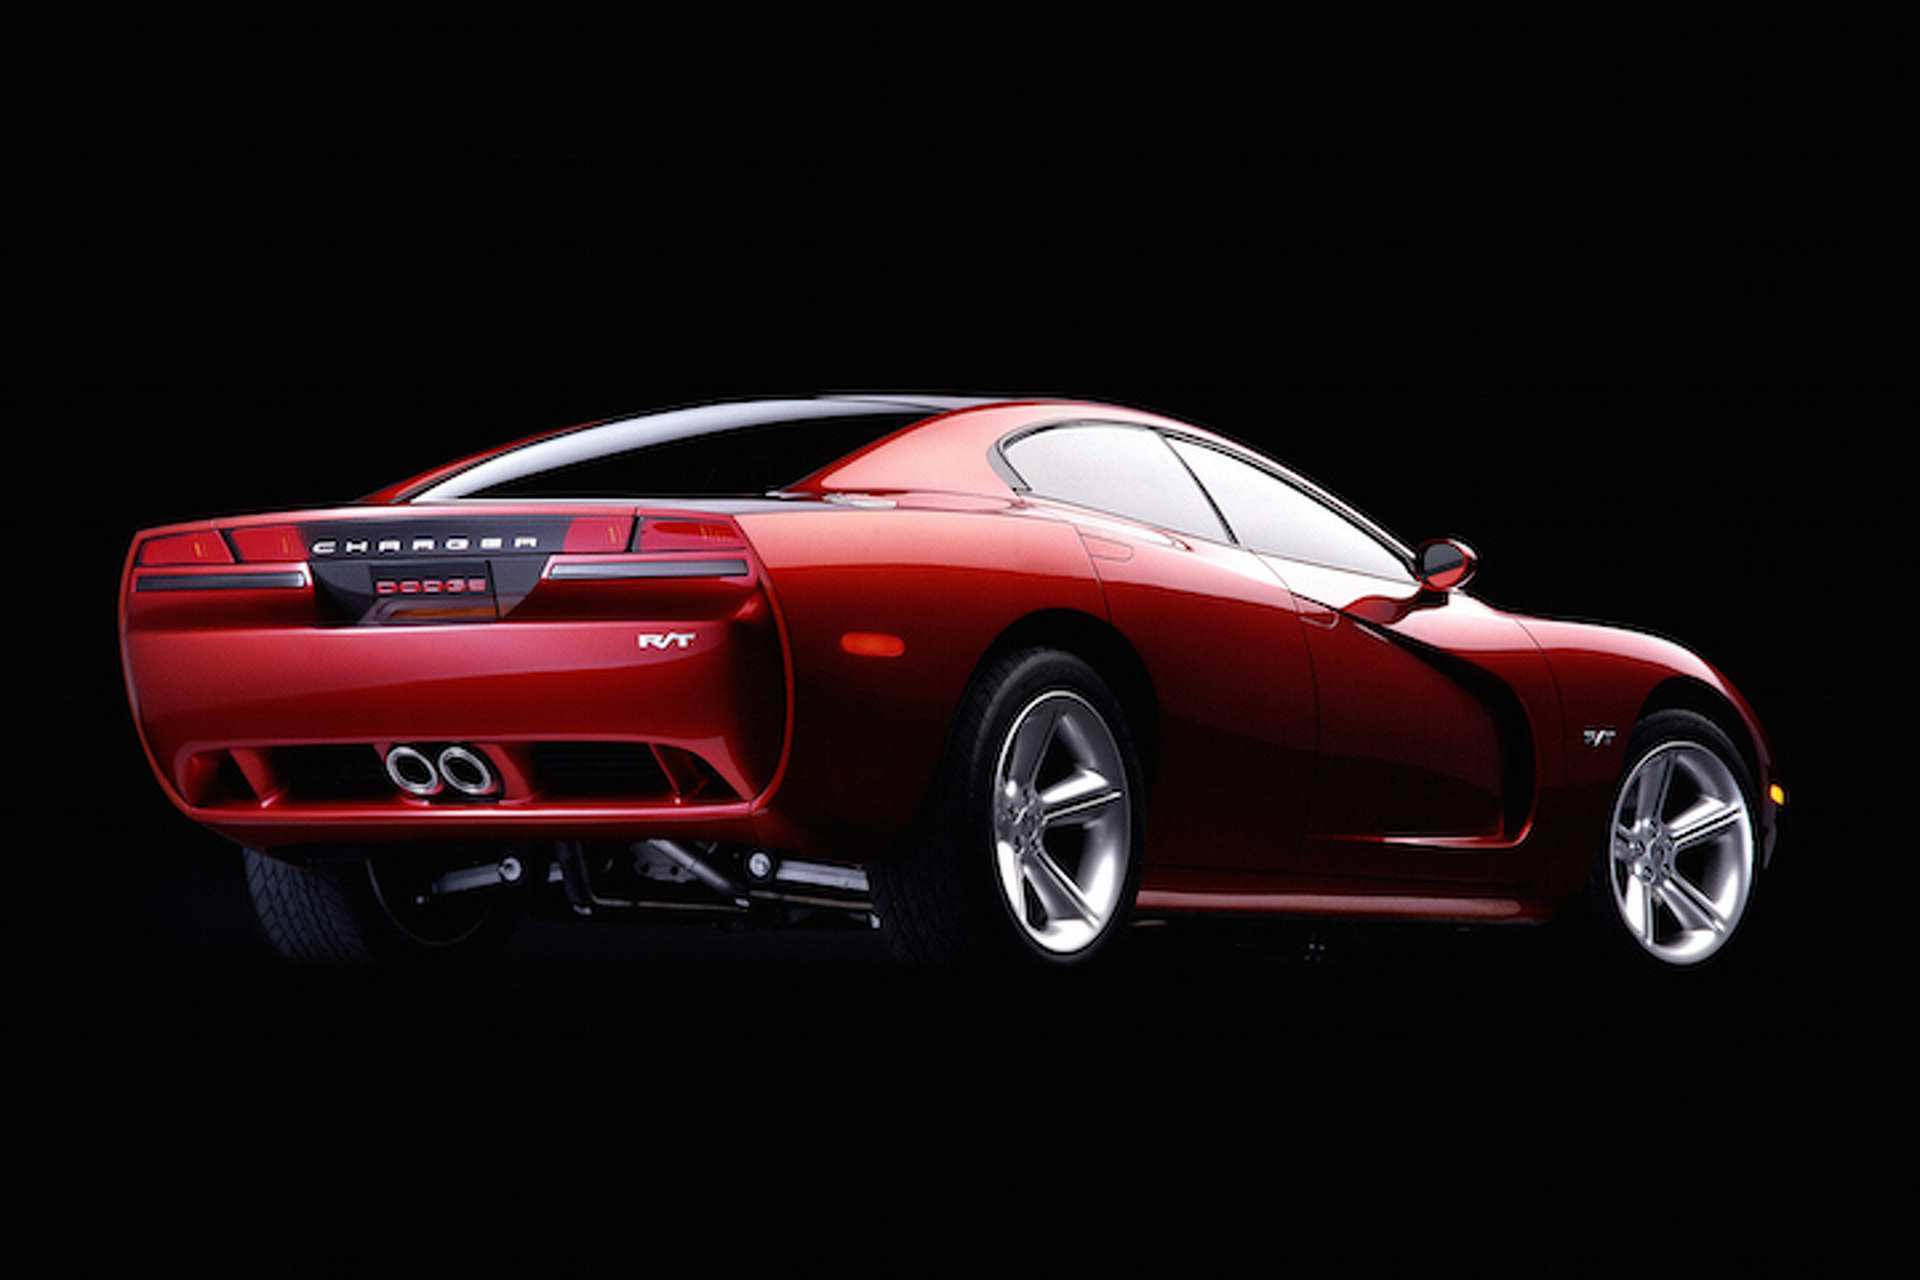 56 Best Review Dodge Charger Redesign 2020 Configurations by Dodge Charger Redesign 2020